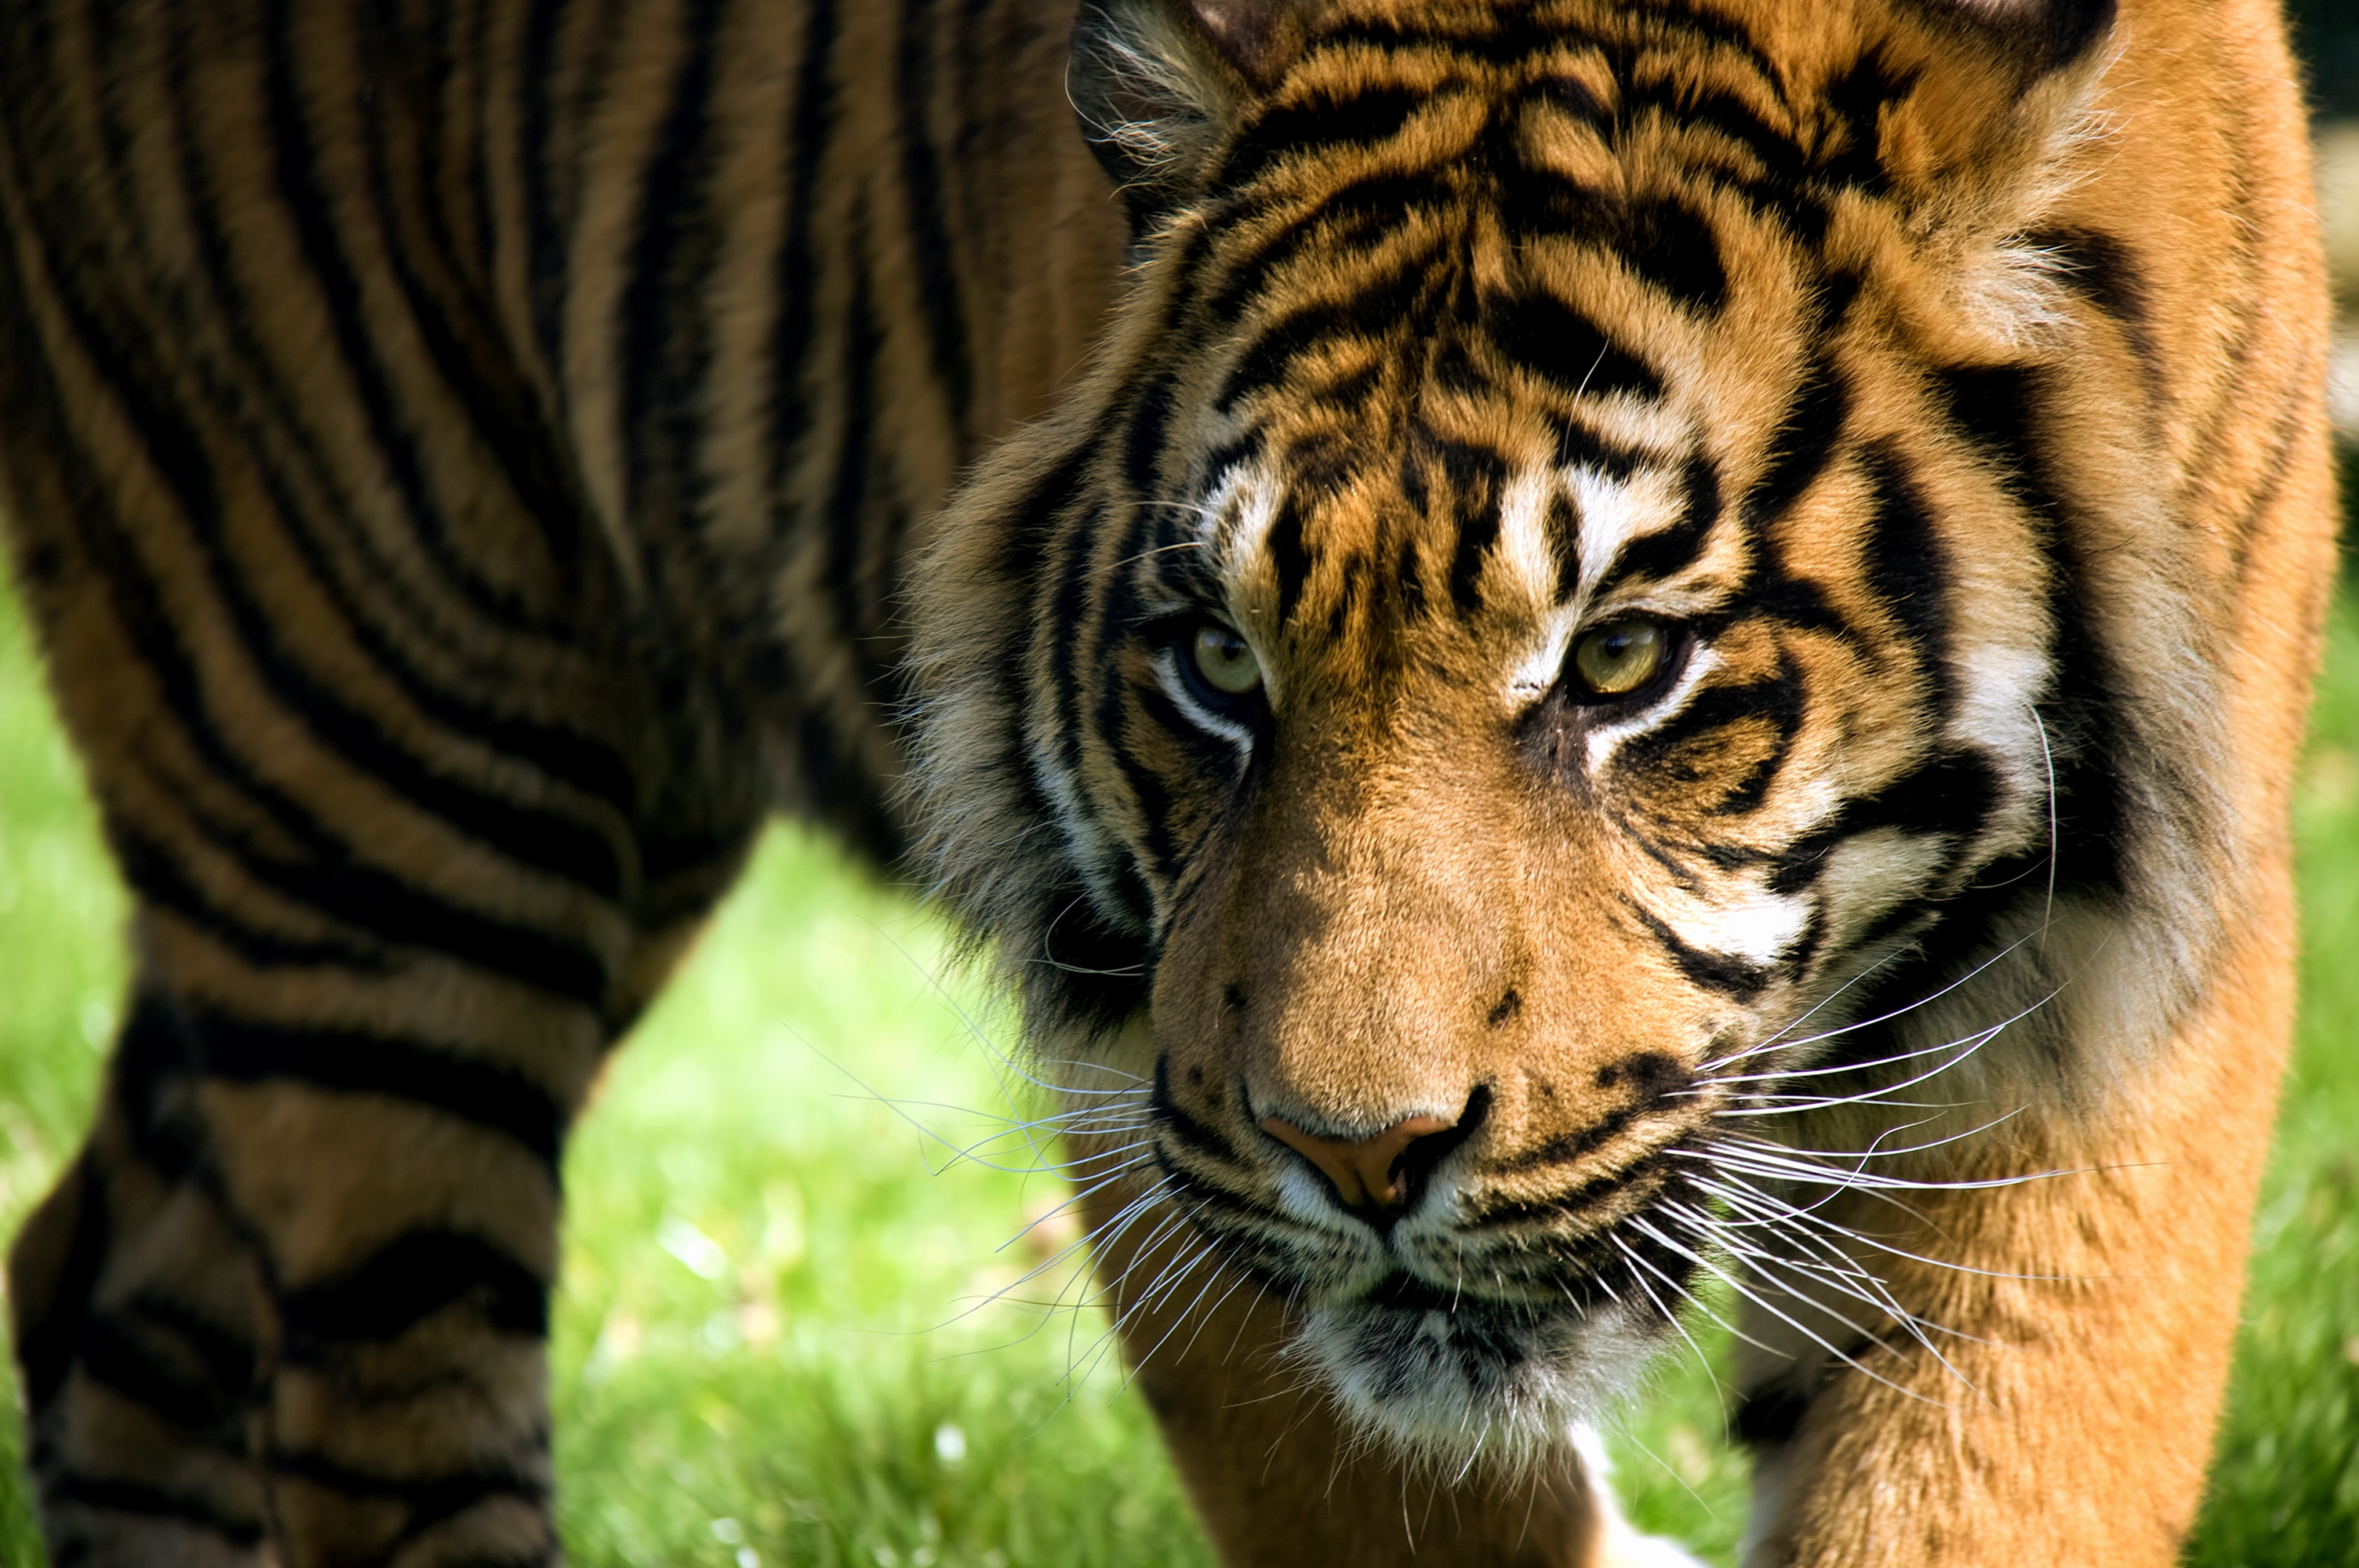 132082 download wallpaper Animals, Tiger, Muzzle, Predator, Striped, Big Cat screensavers and pictures for free